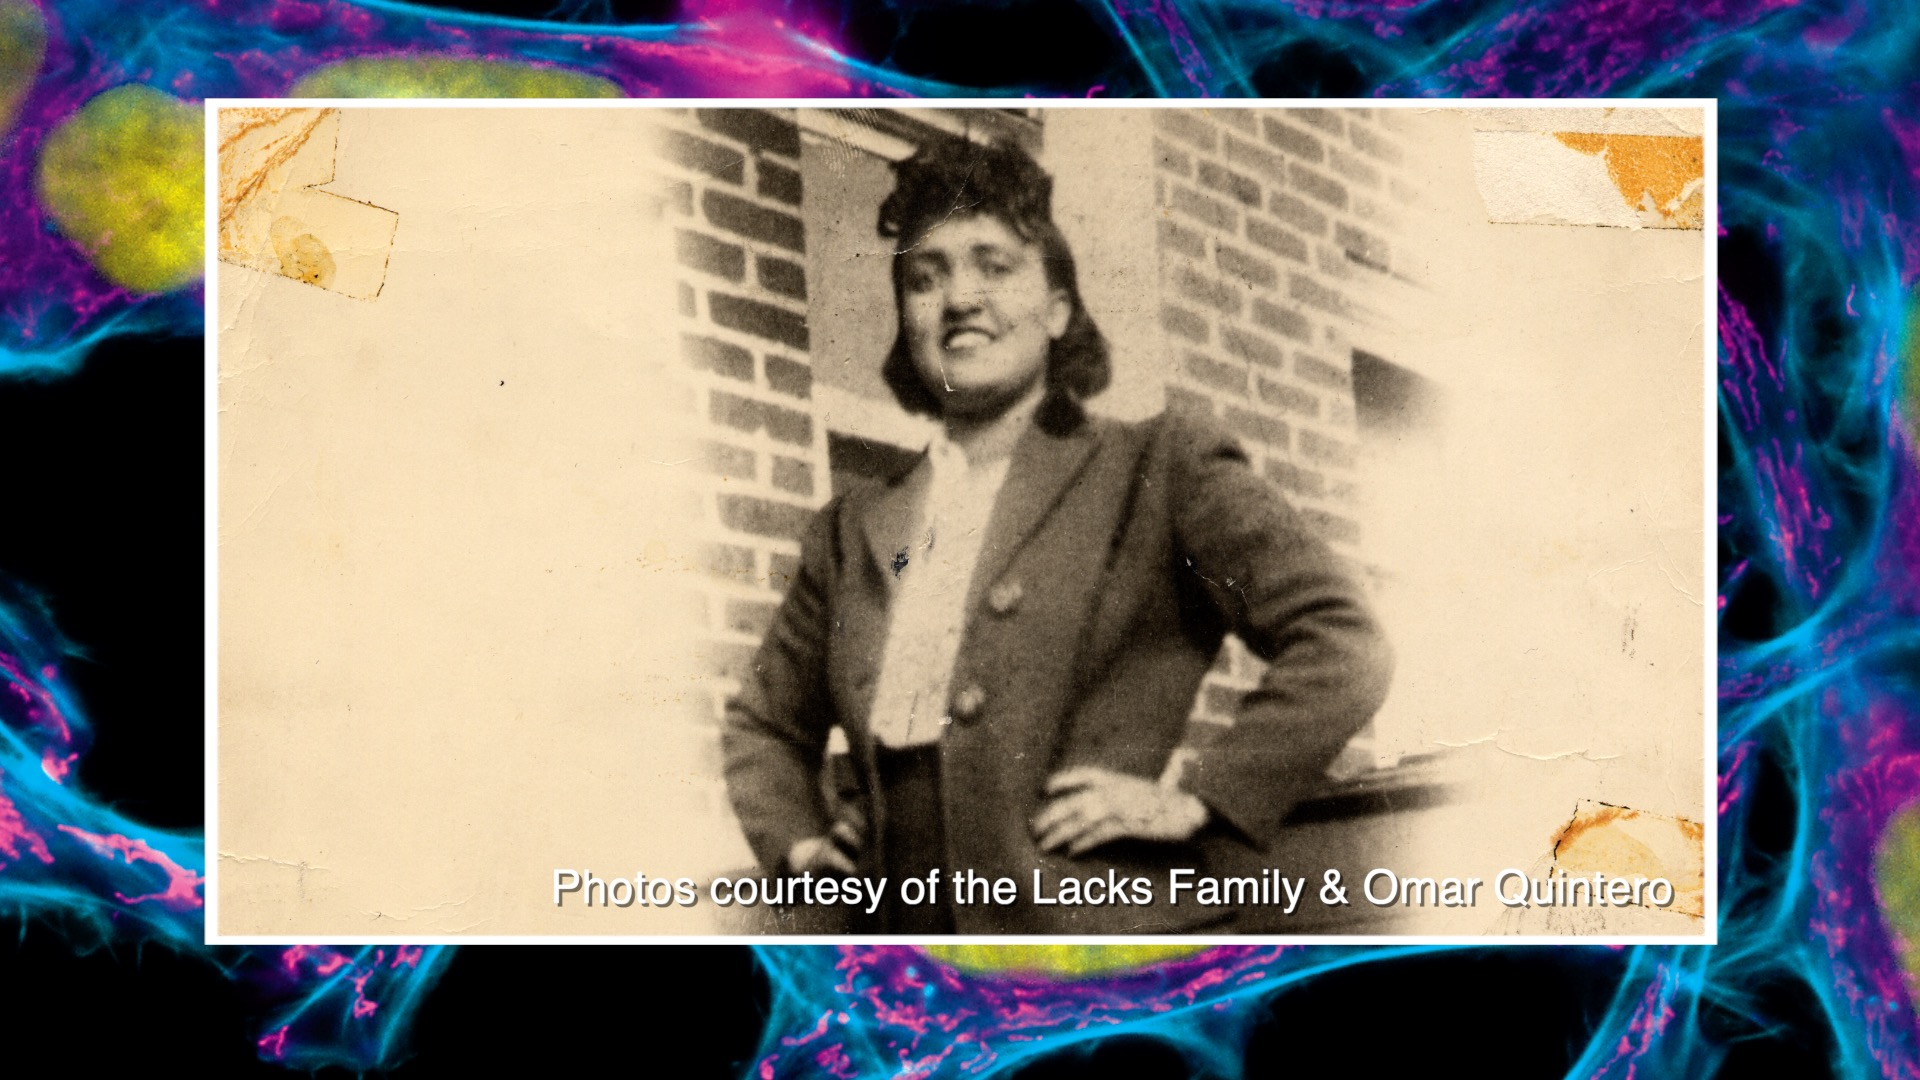 Lacks' Legacy Impacts Battle Against Cancer